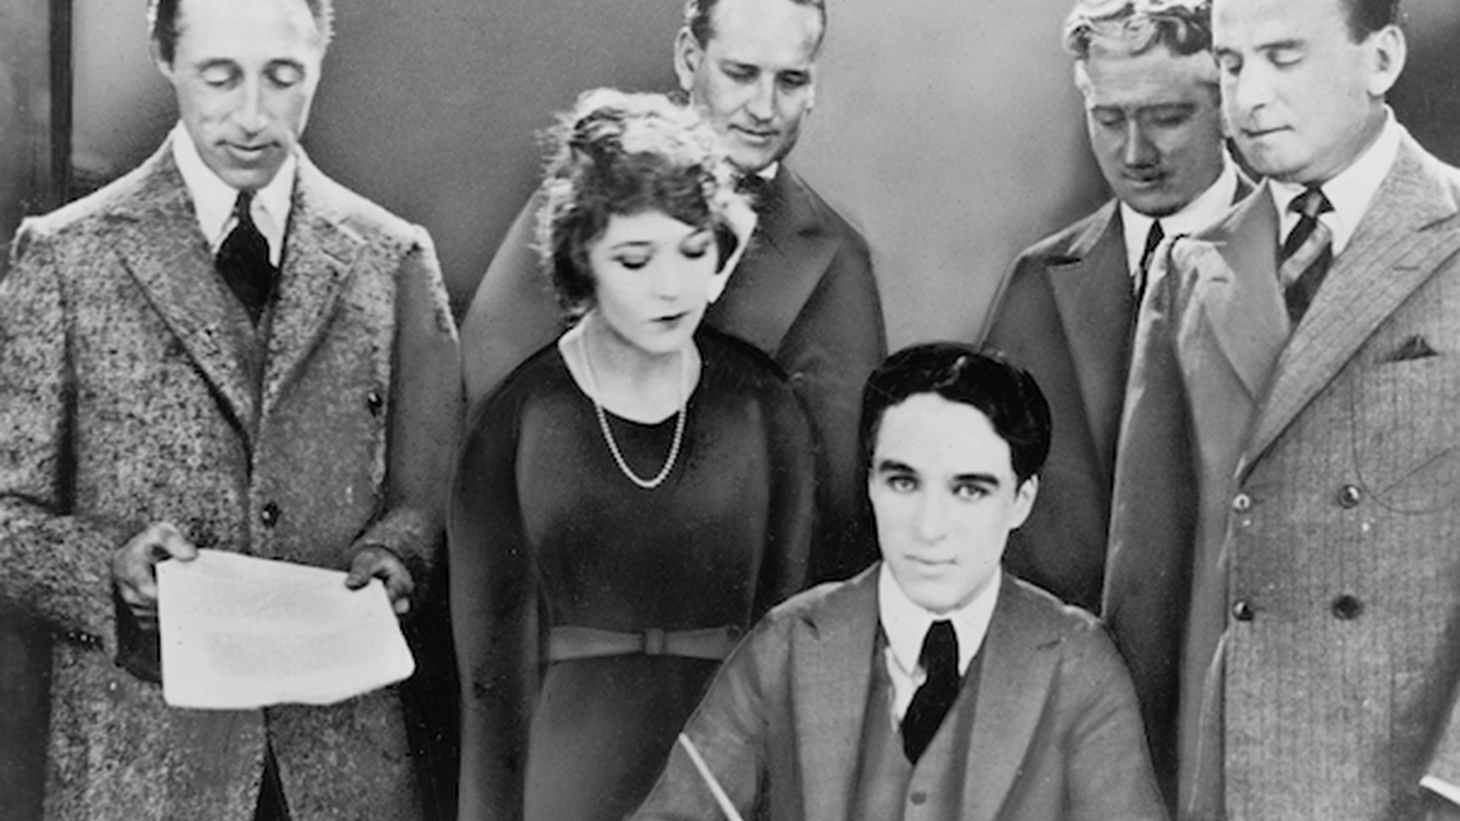 In the early 1900s, three Angelenos were instrumental in the huge and sudden growth of the city: engineer William Mulholland, movie director DW Griffith, and charismatic evangelist Aimee Semple McPherson.